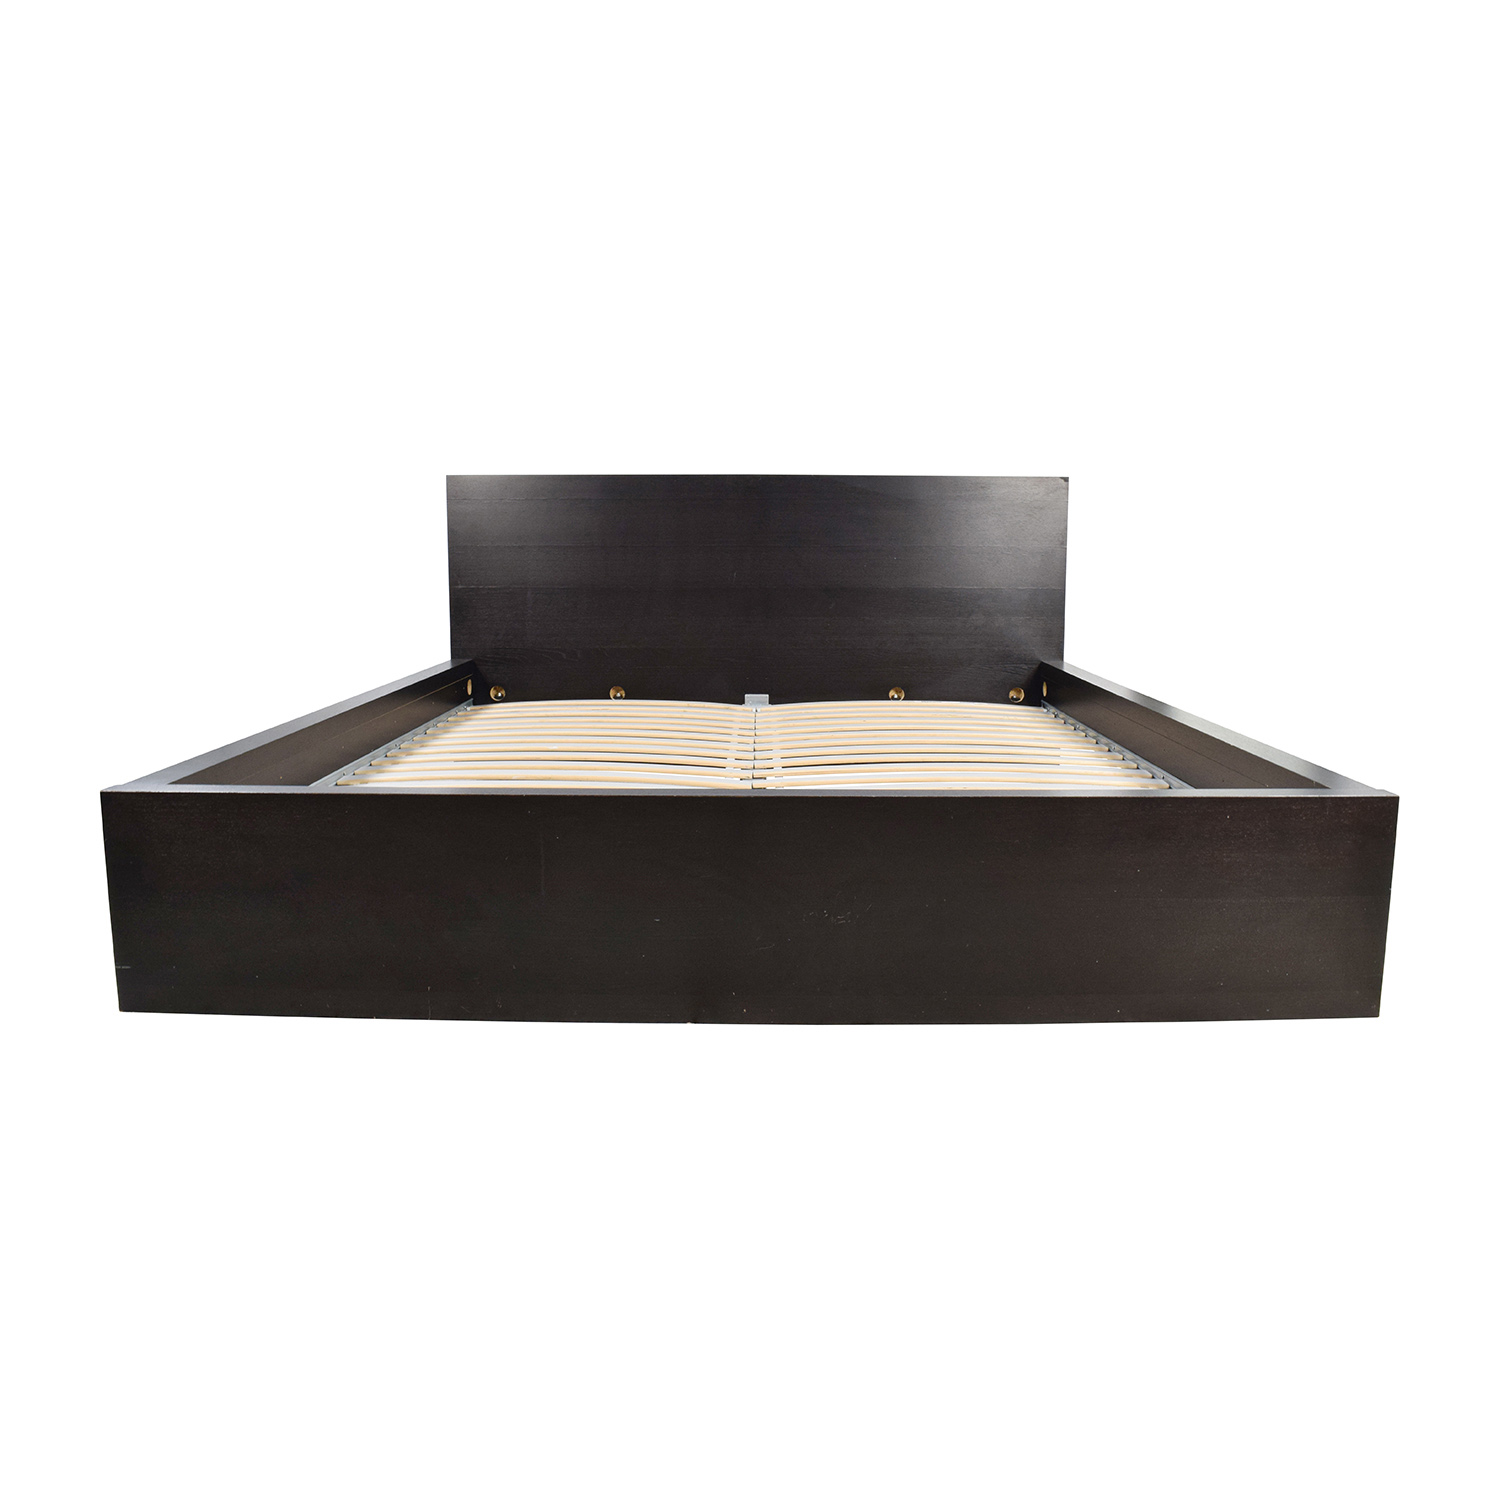 79% OFF - IKEA IKEA Malm King Bed Frame / Beds